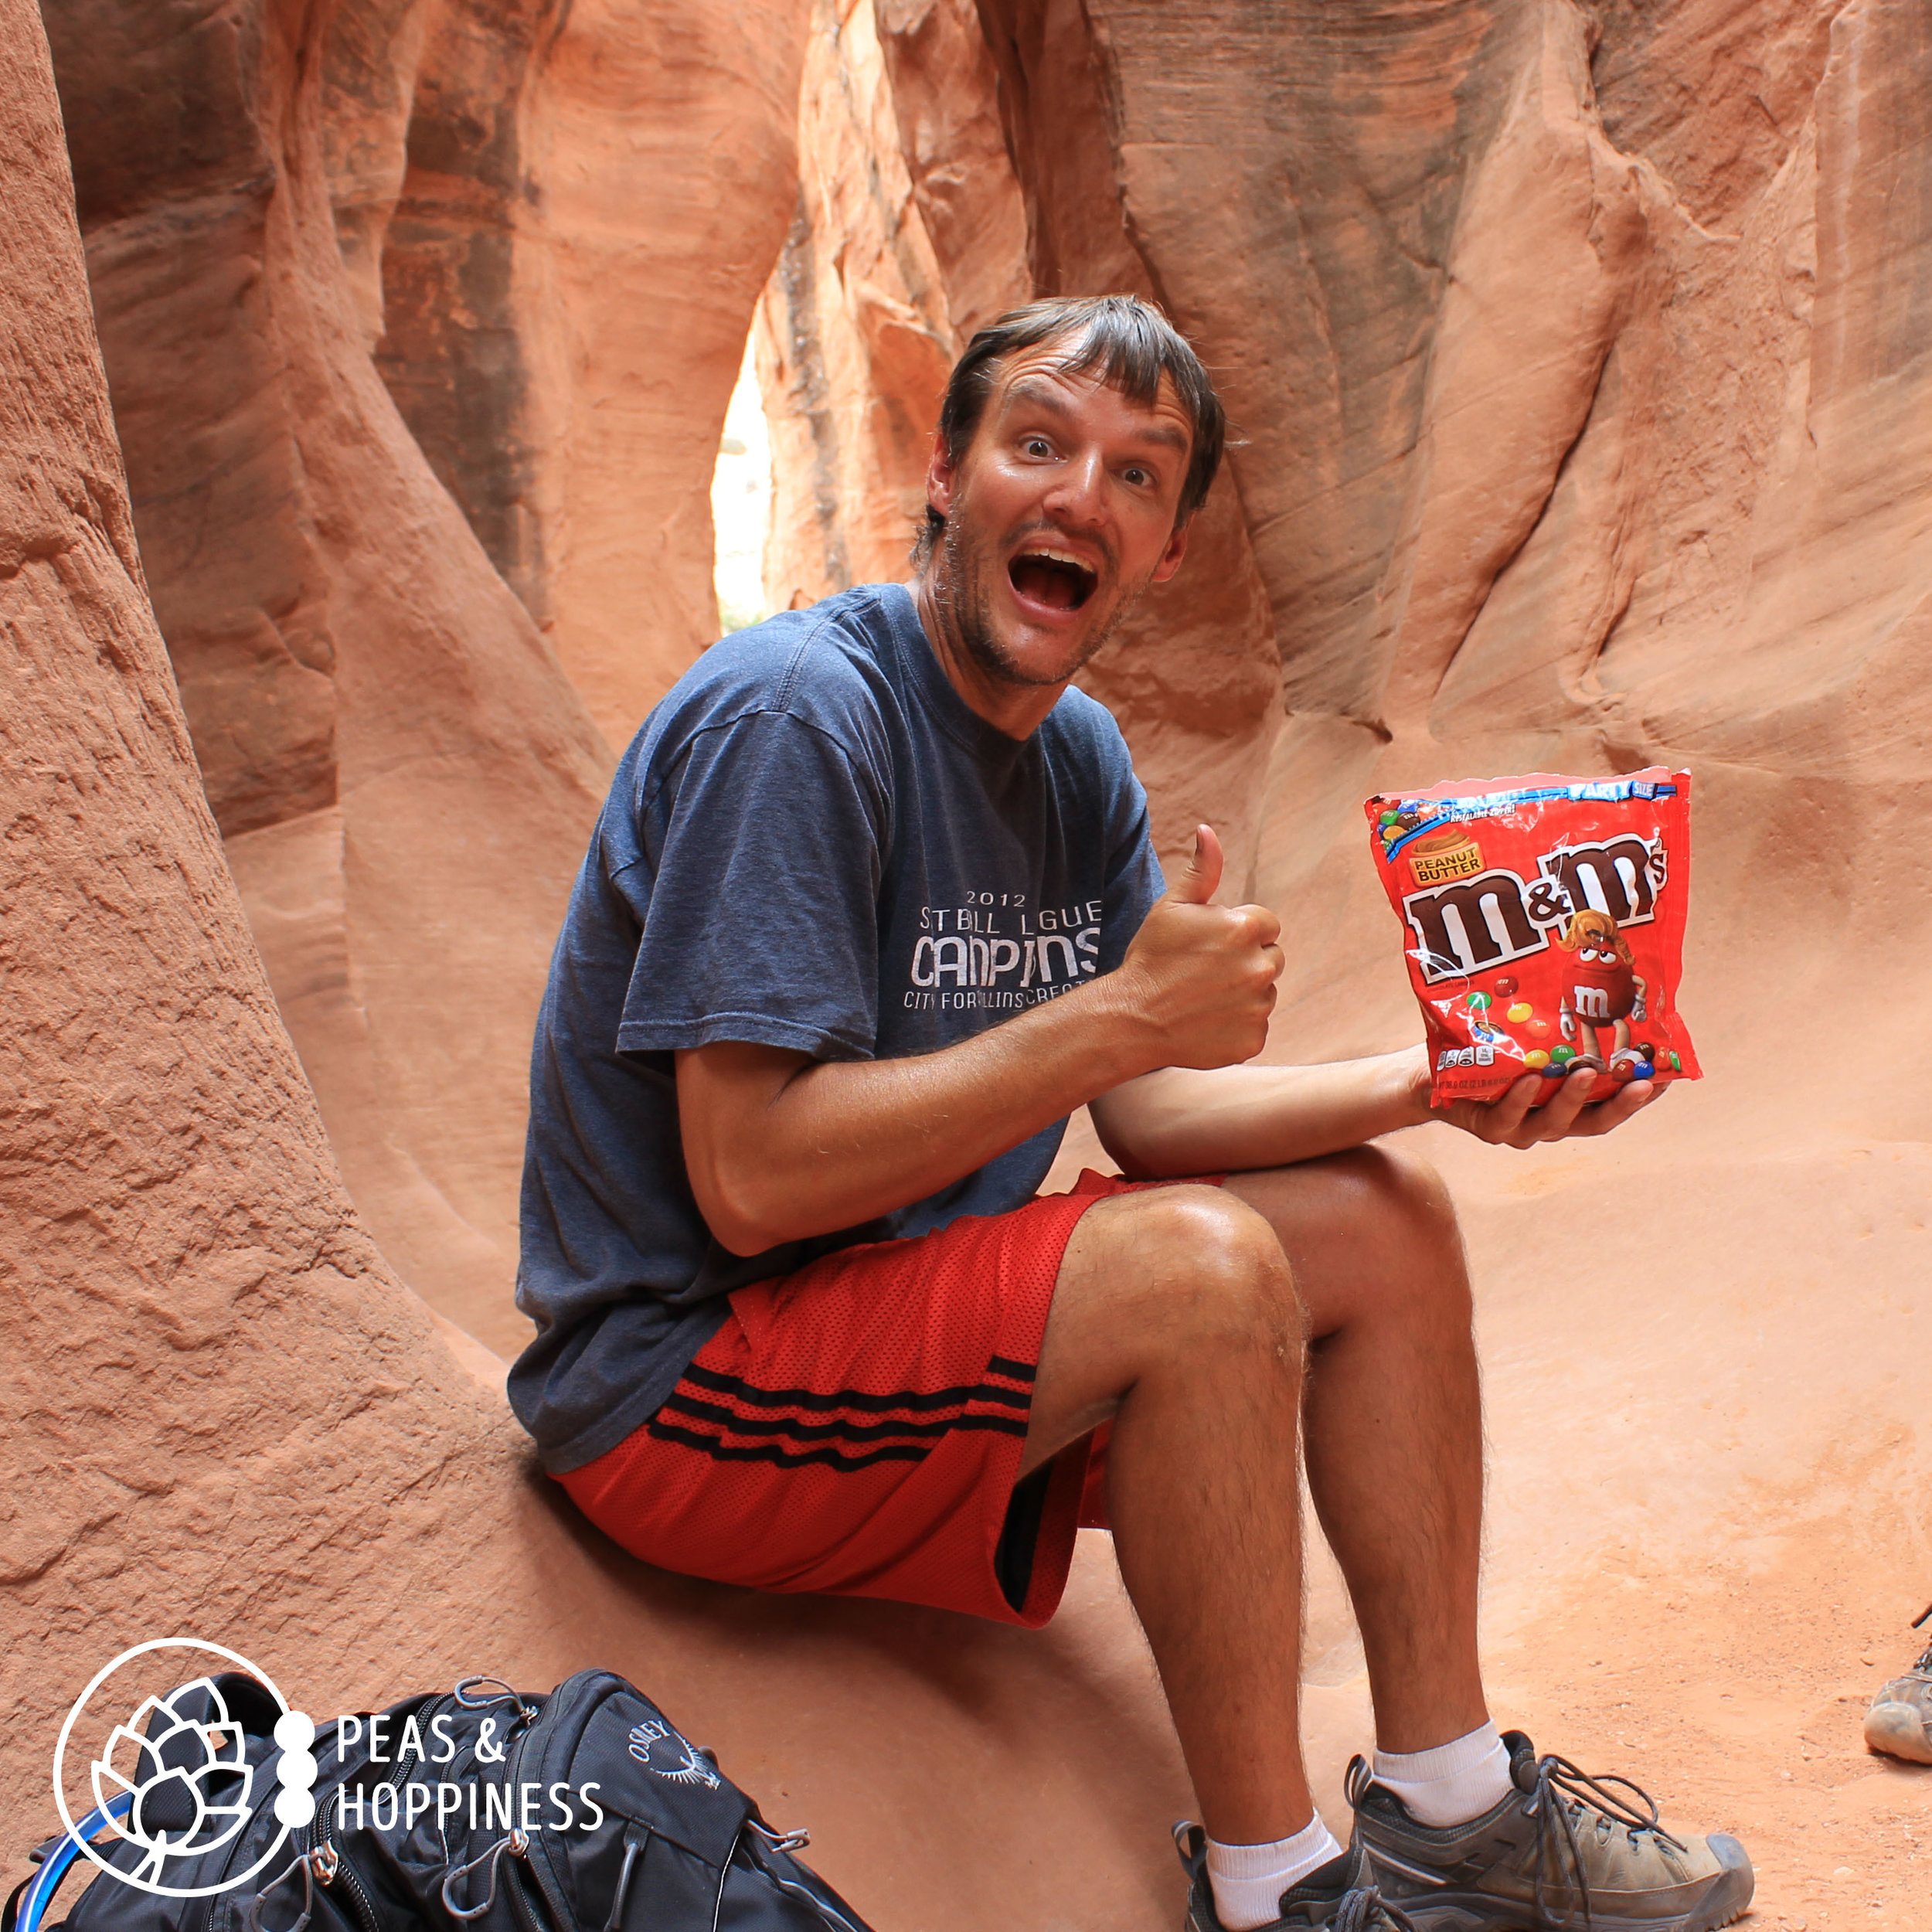 I'm not sure if he's delirious from the sun and lack of calories or if I'm finally rubbing off on him and he's really that excited about peanut butter M&Ms! A tasty treat in the slot canyons